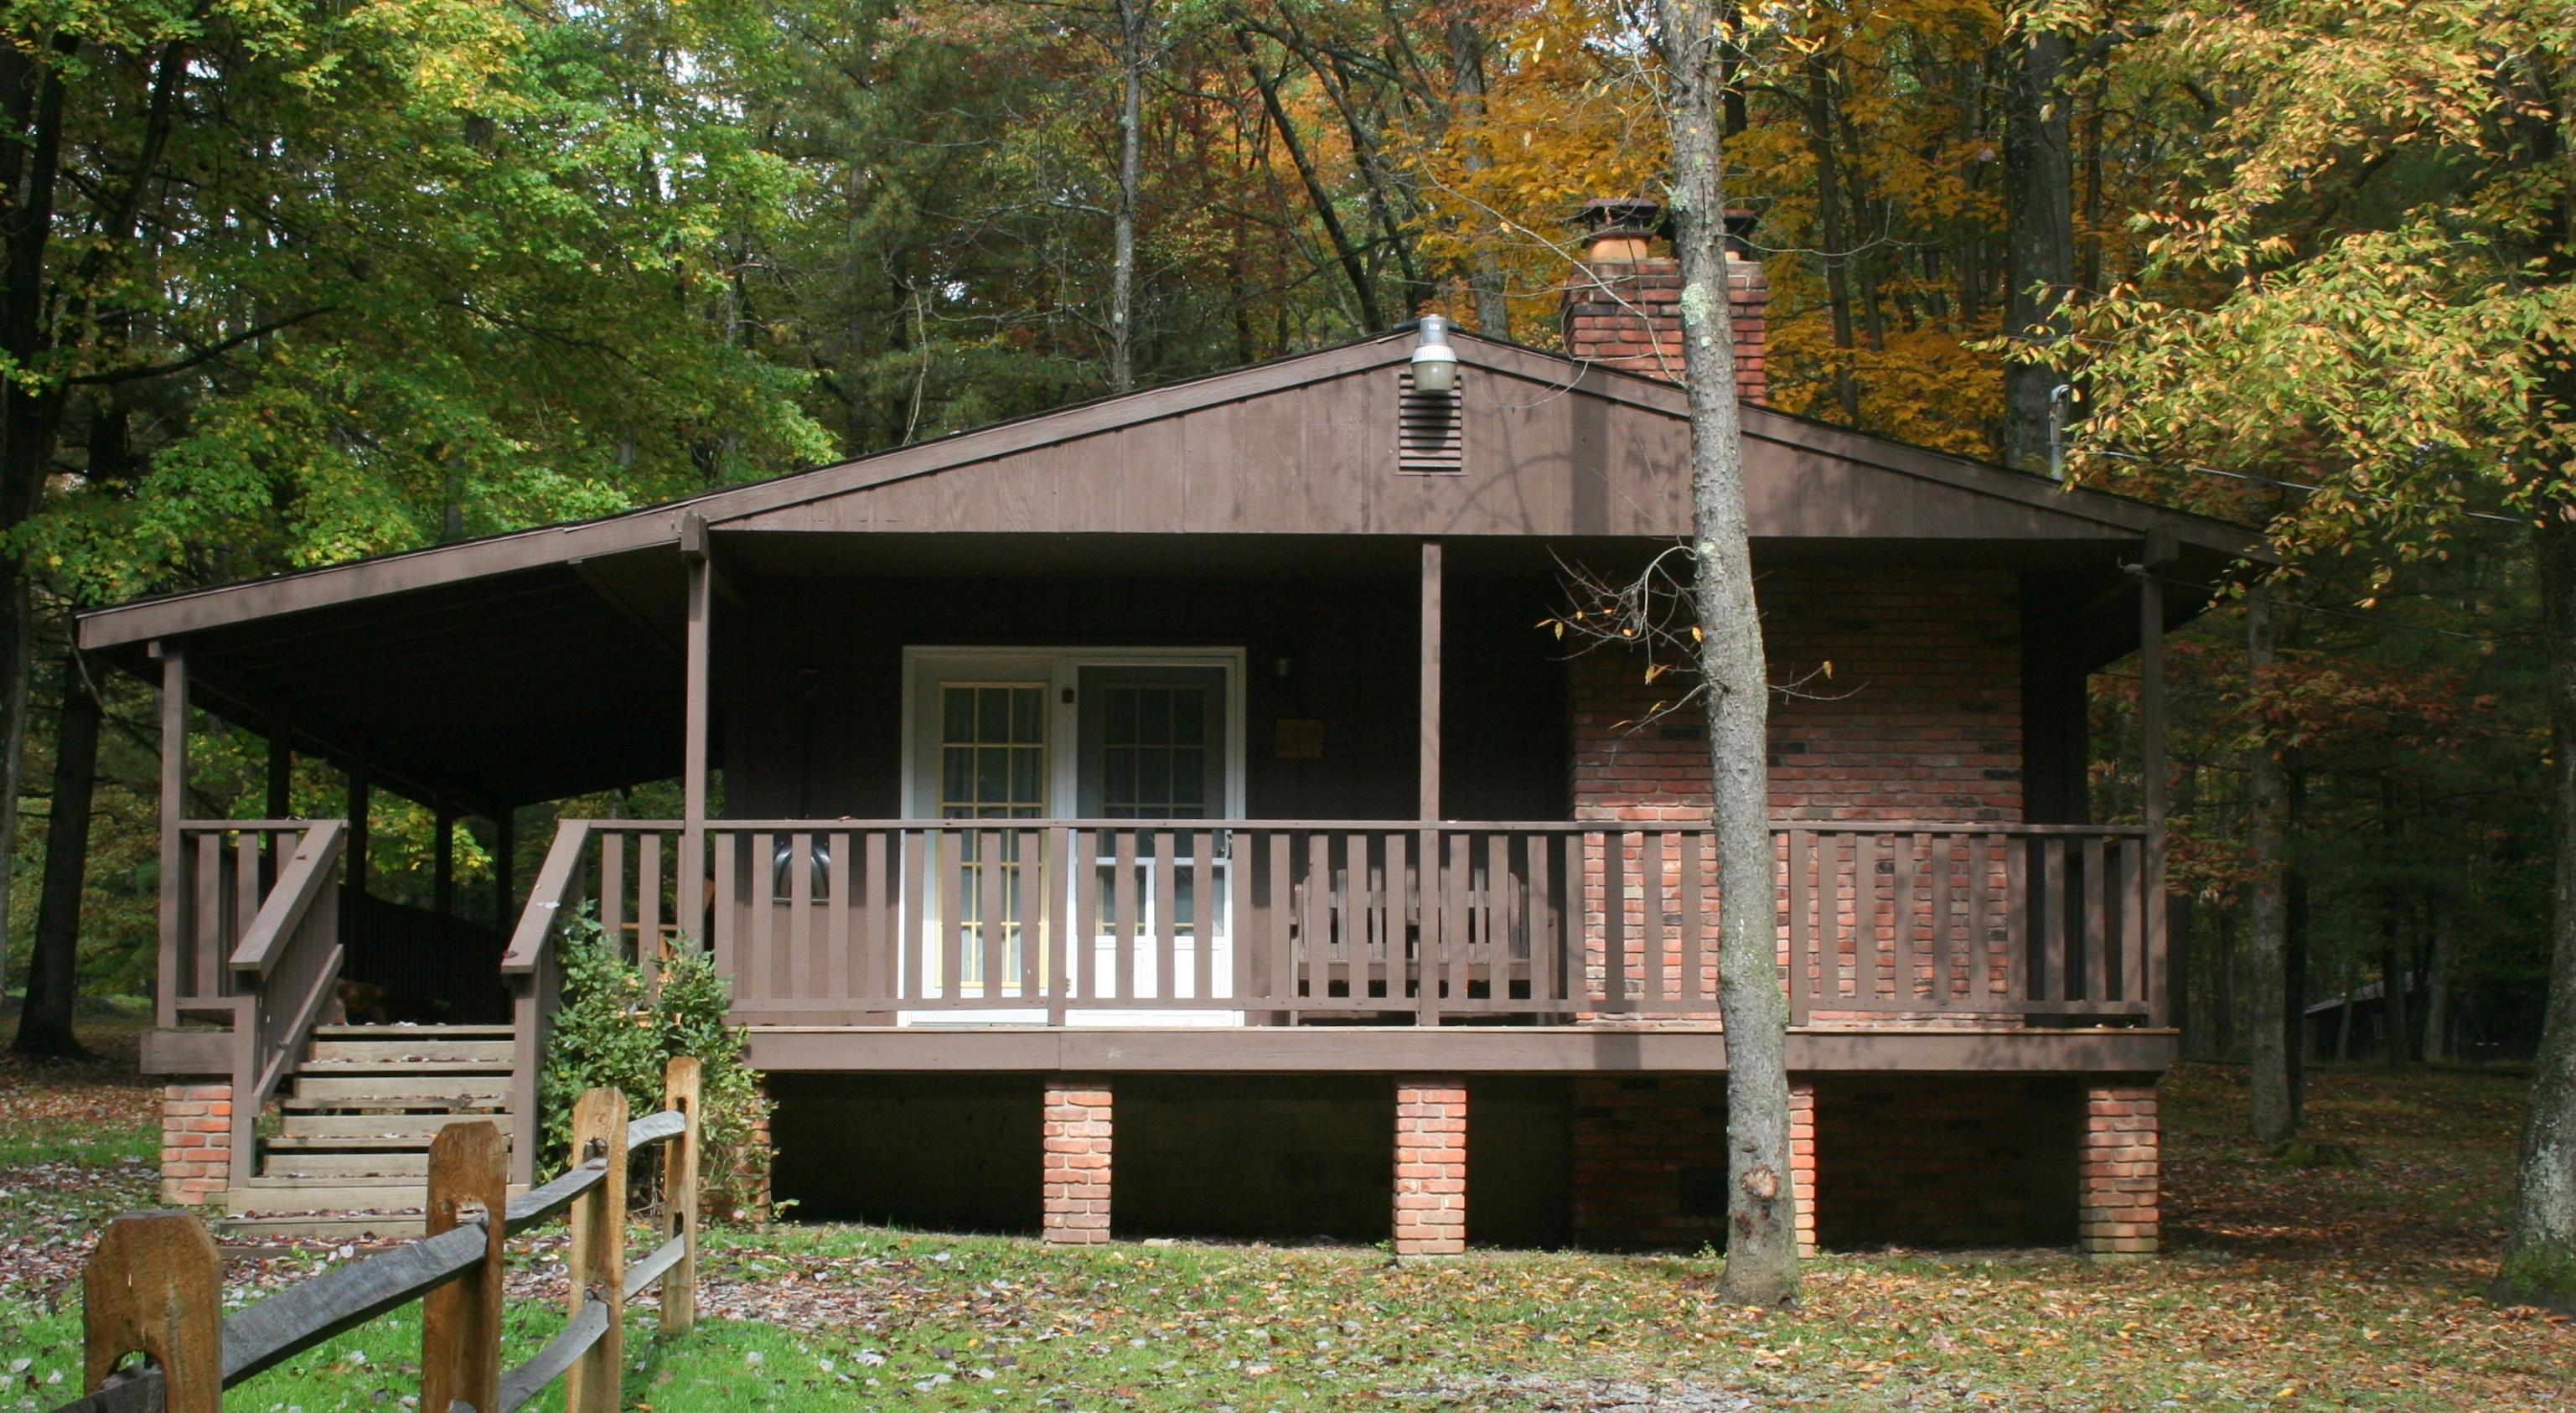 mountain scenic near log al chattanooga pet ga lookout cabins friendly view rentals alabama tn cabin